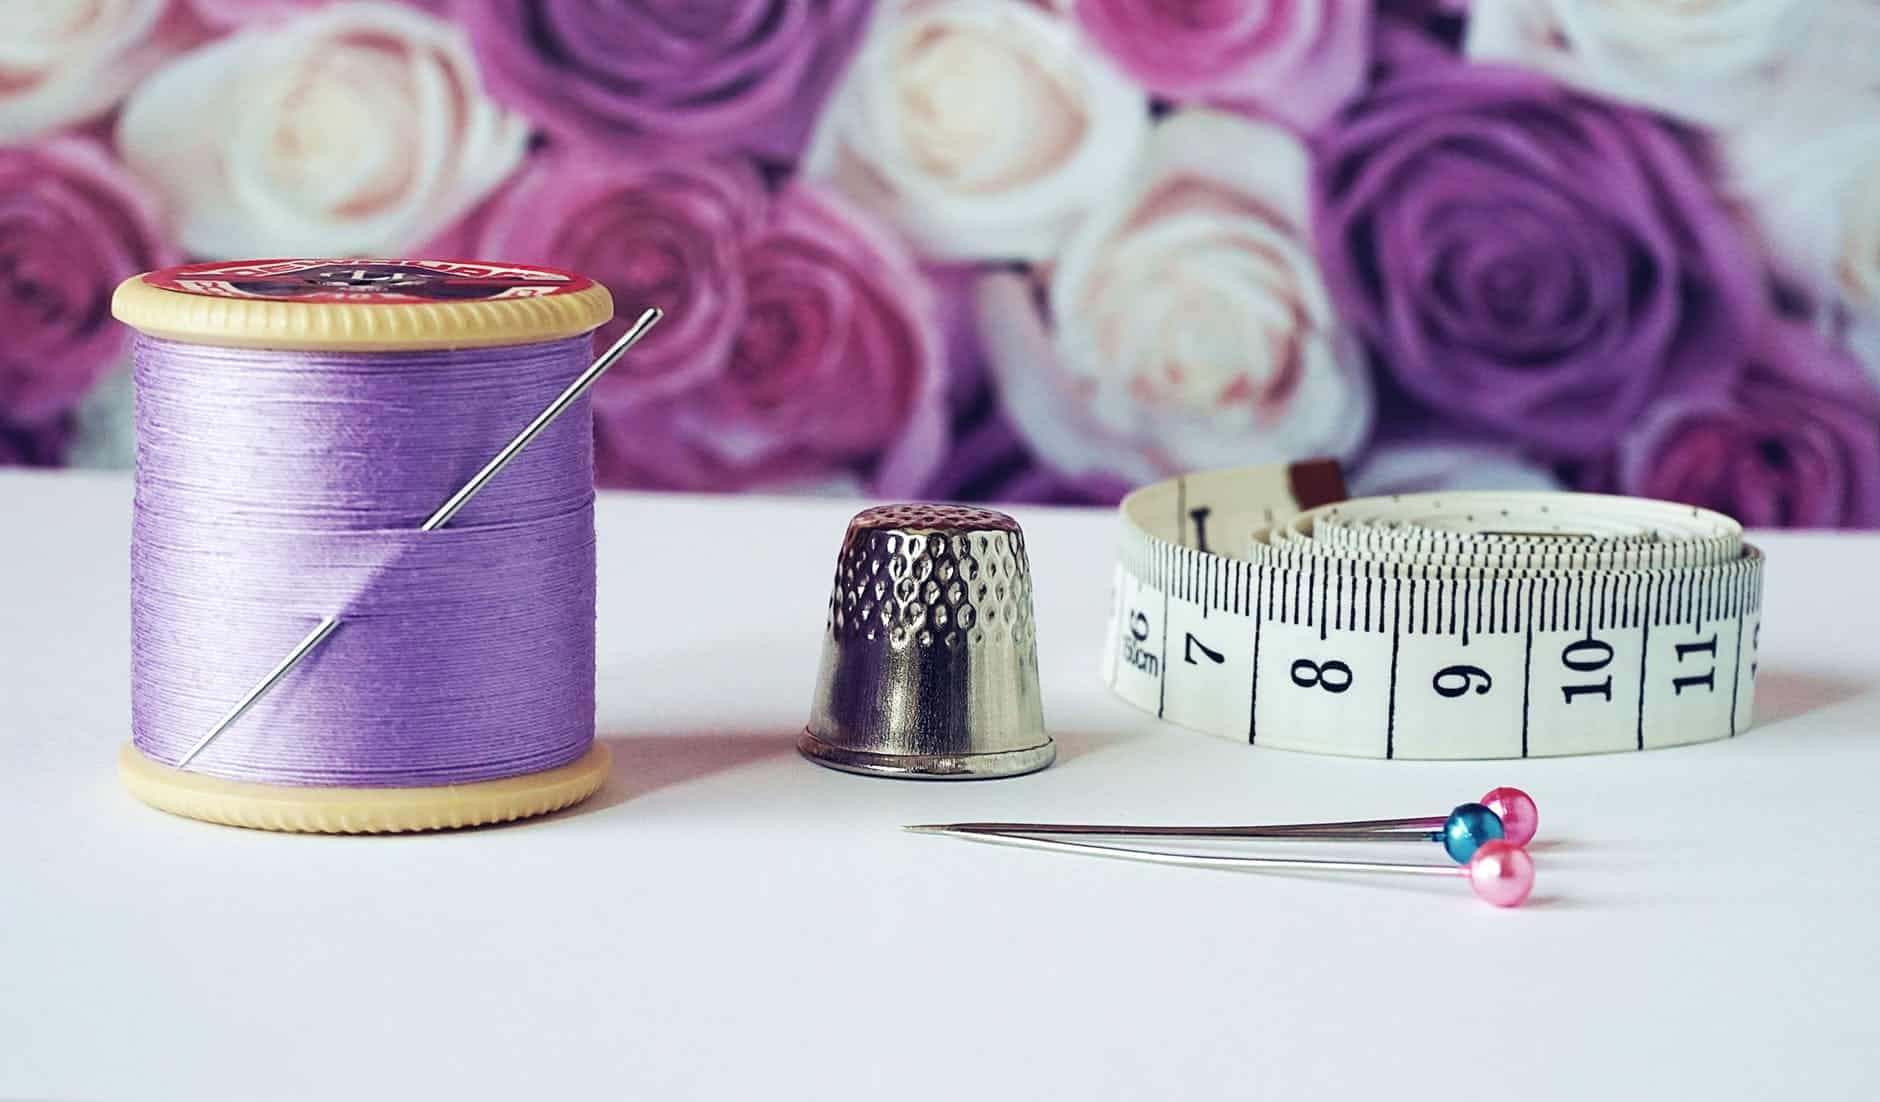 Measuring tape and purple thread